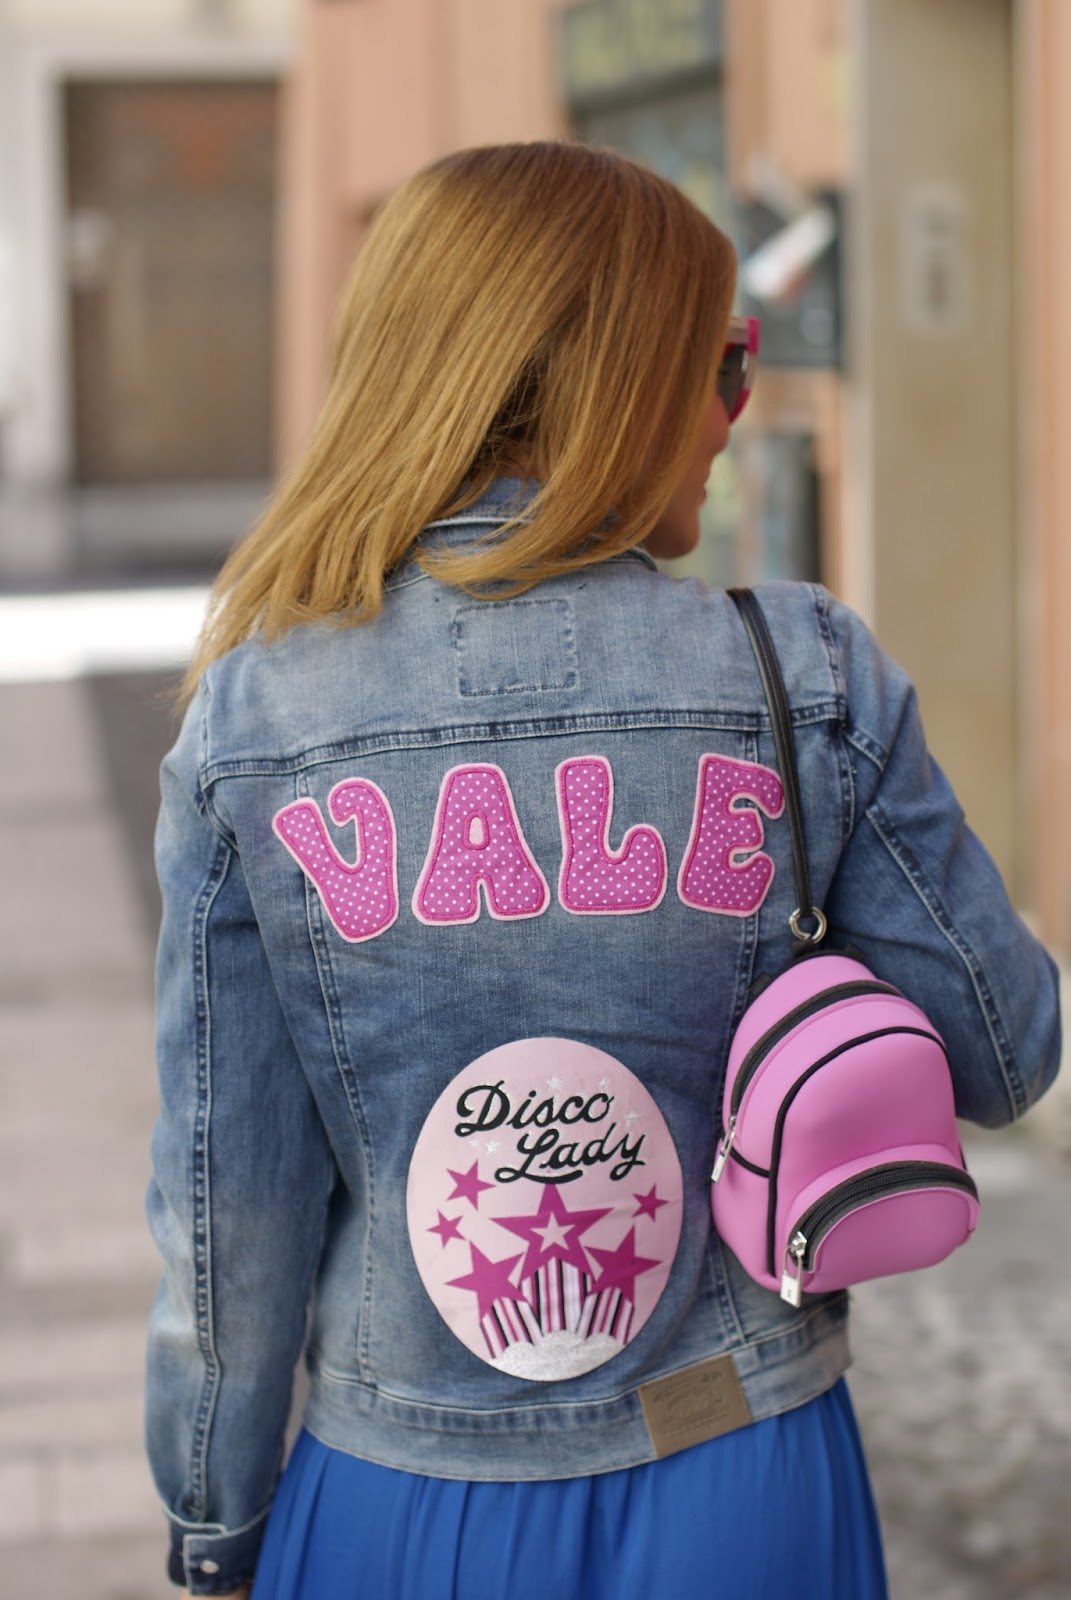 Vale and Disco Lady patch on denim jacket on Fashion and Cookies fashion blog, fashion blogger style